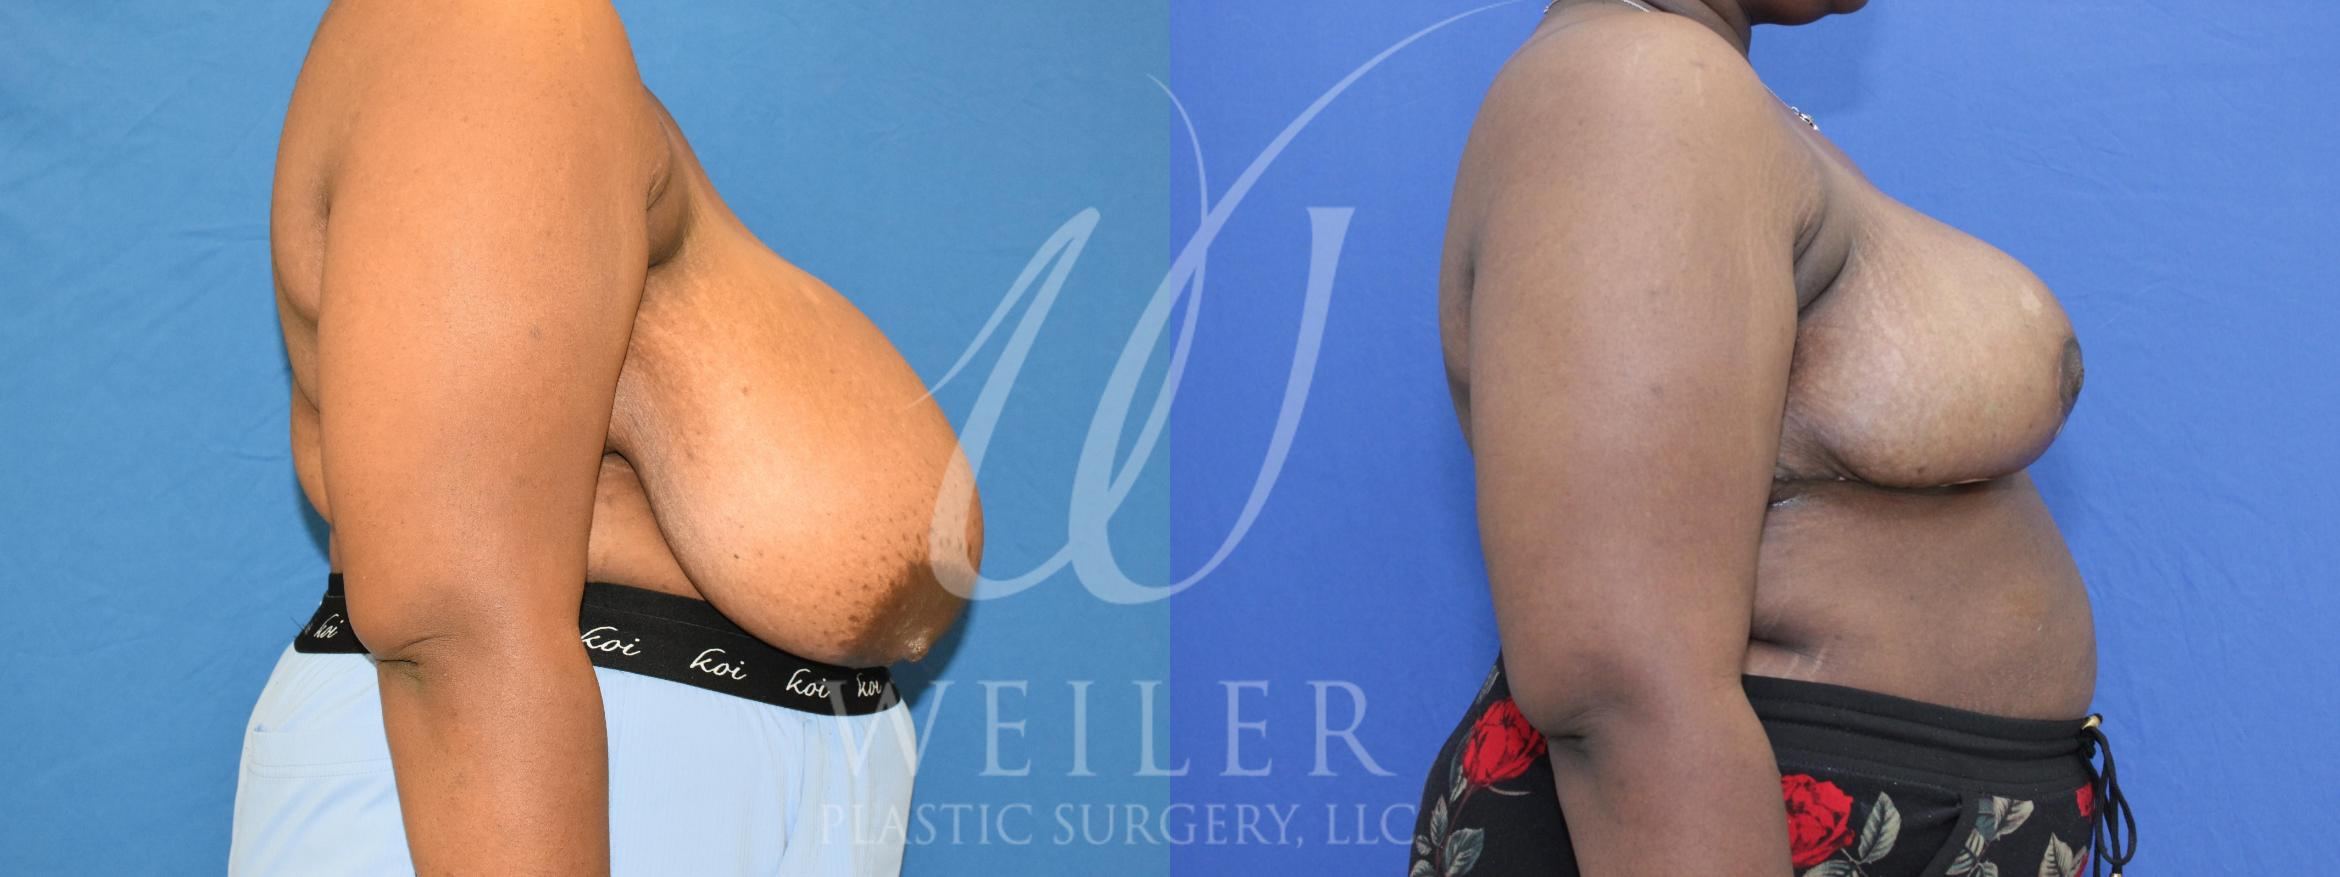 Breast Reduction Before & After Photo | Baton Rouge, Louisiana | Weiler Plastic Surgery